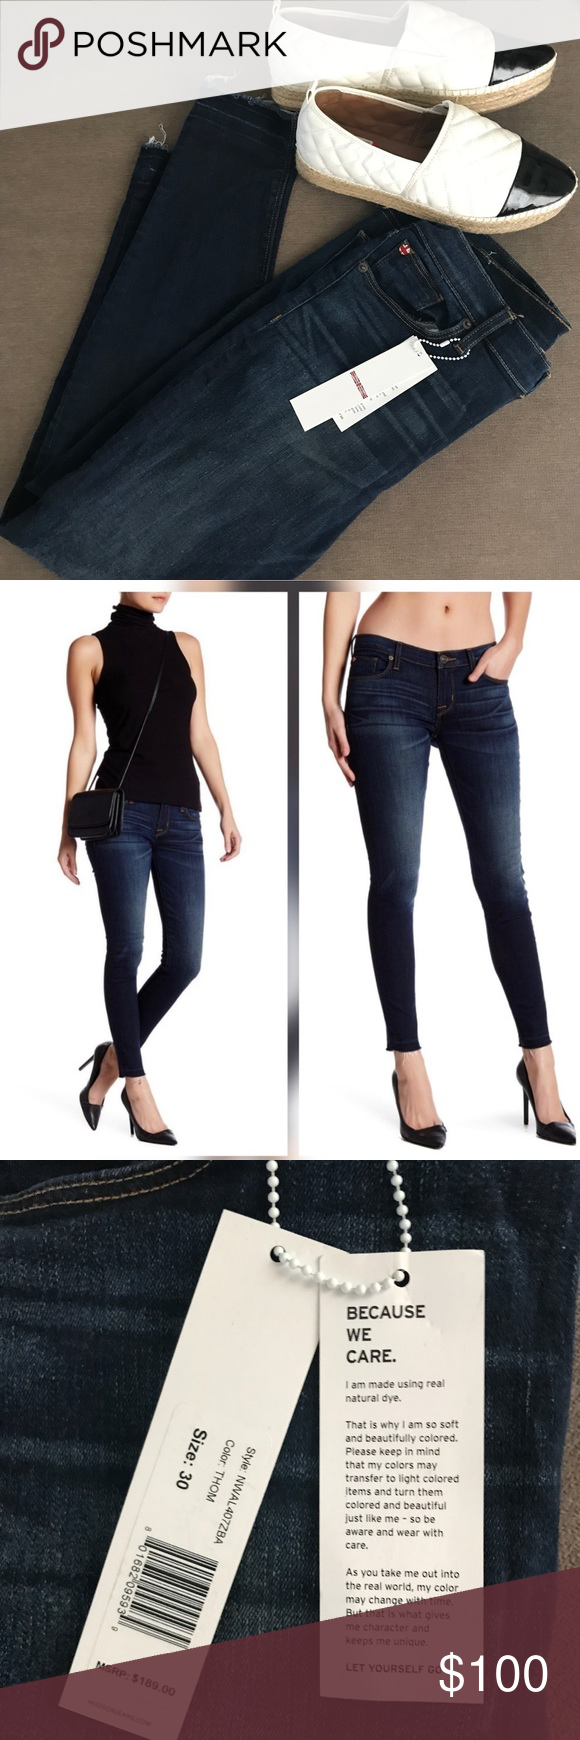 NWT Krista Ankle Skinny Jeans New Jeans! I bought off of here- they are so cute I just ordered the wrong size! Your win! Hudson Jeans Jeans